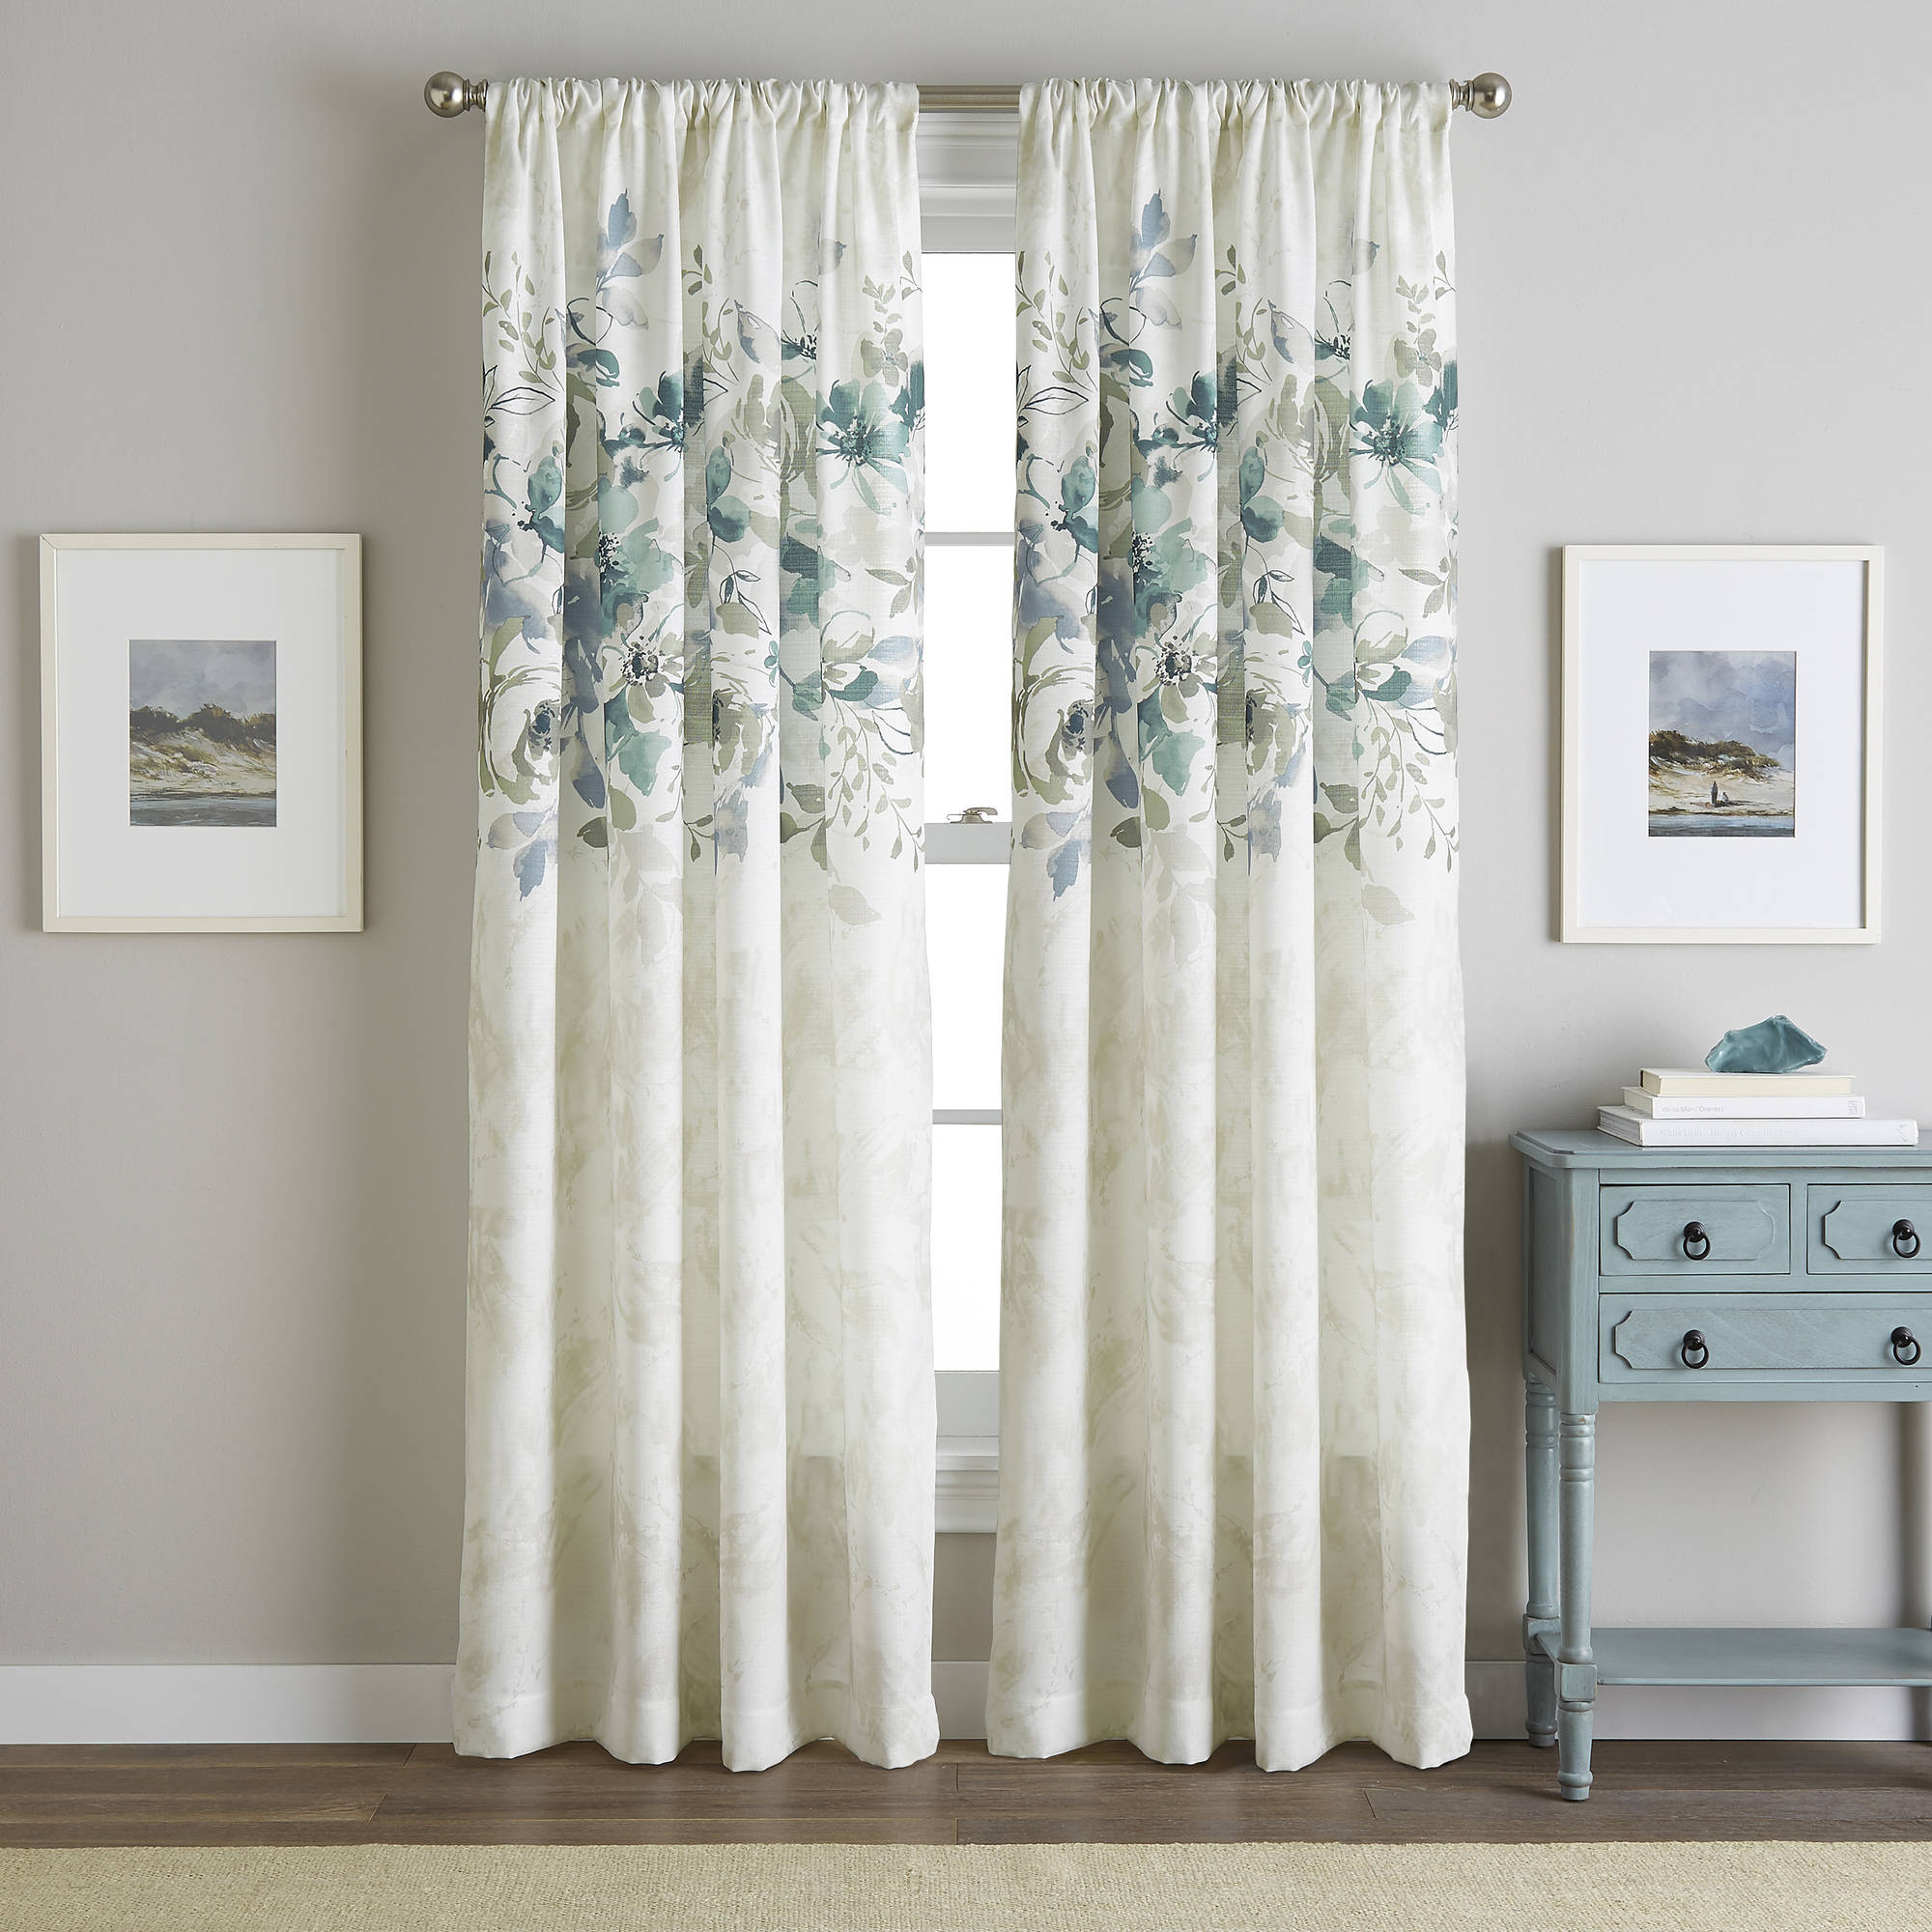 Watercolor Floral Poletop Curtain Panel  Blue Floral Curtains